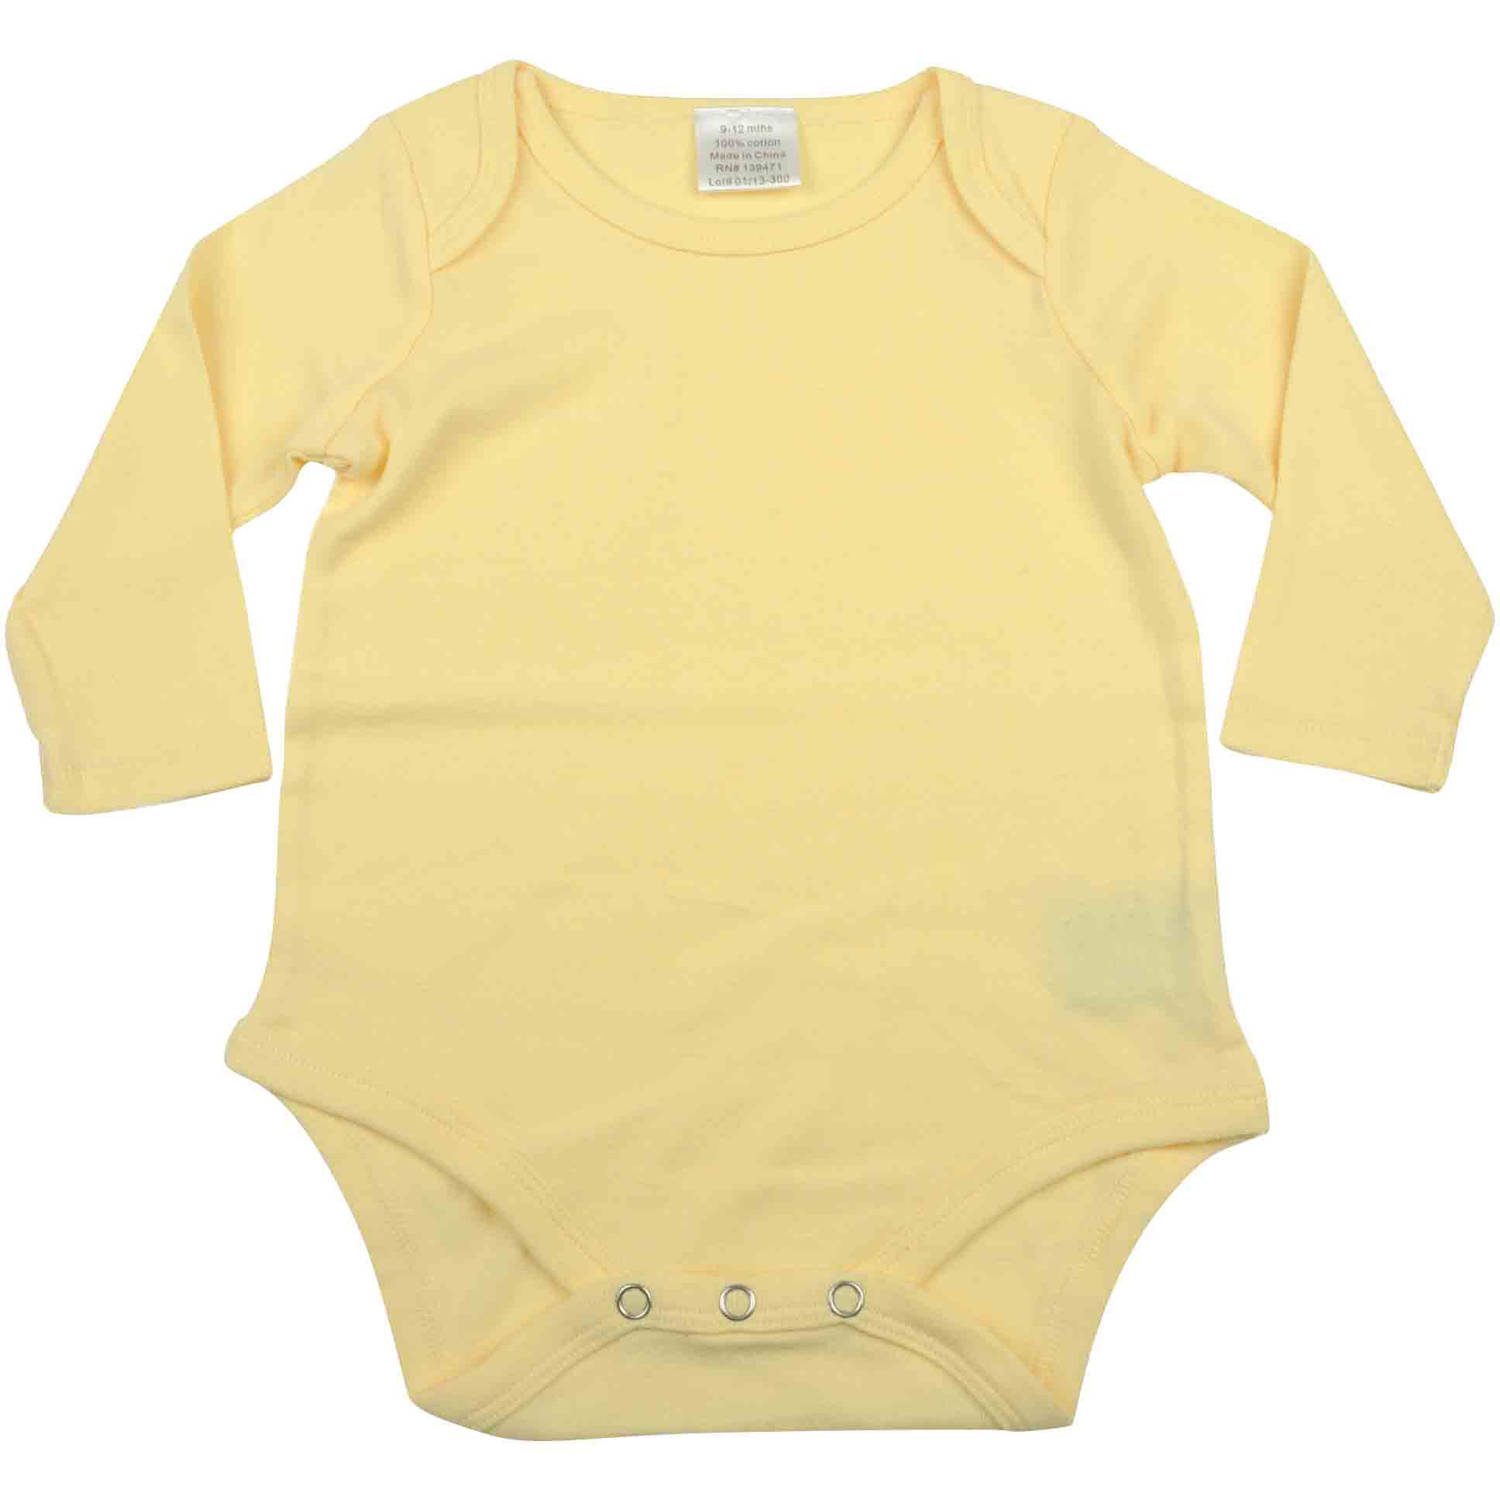 Kidz Stuff Insect Repellant Newborn  Baby Boy, Girl or Unisex Long-Sleeved Bodysuit